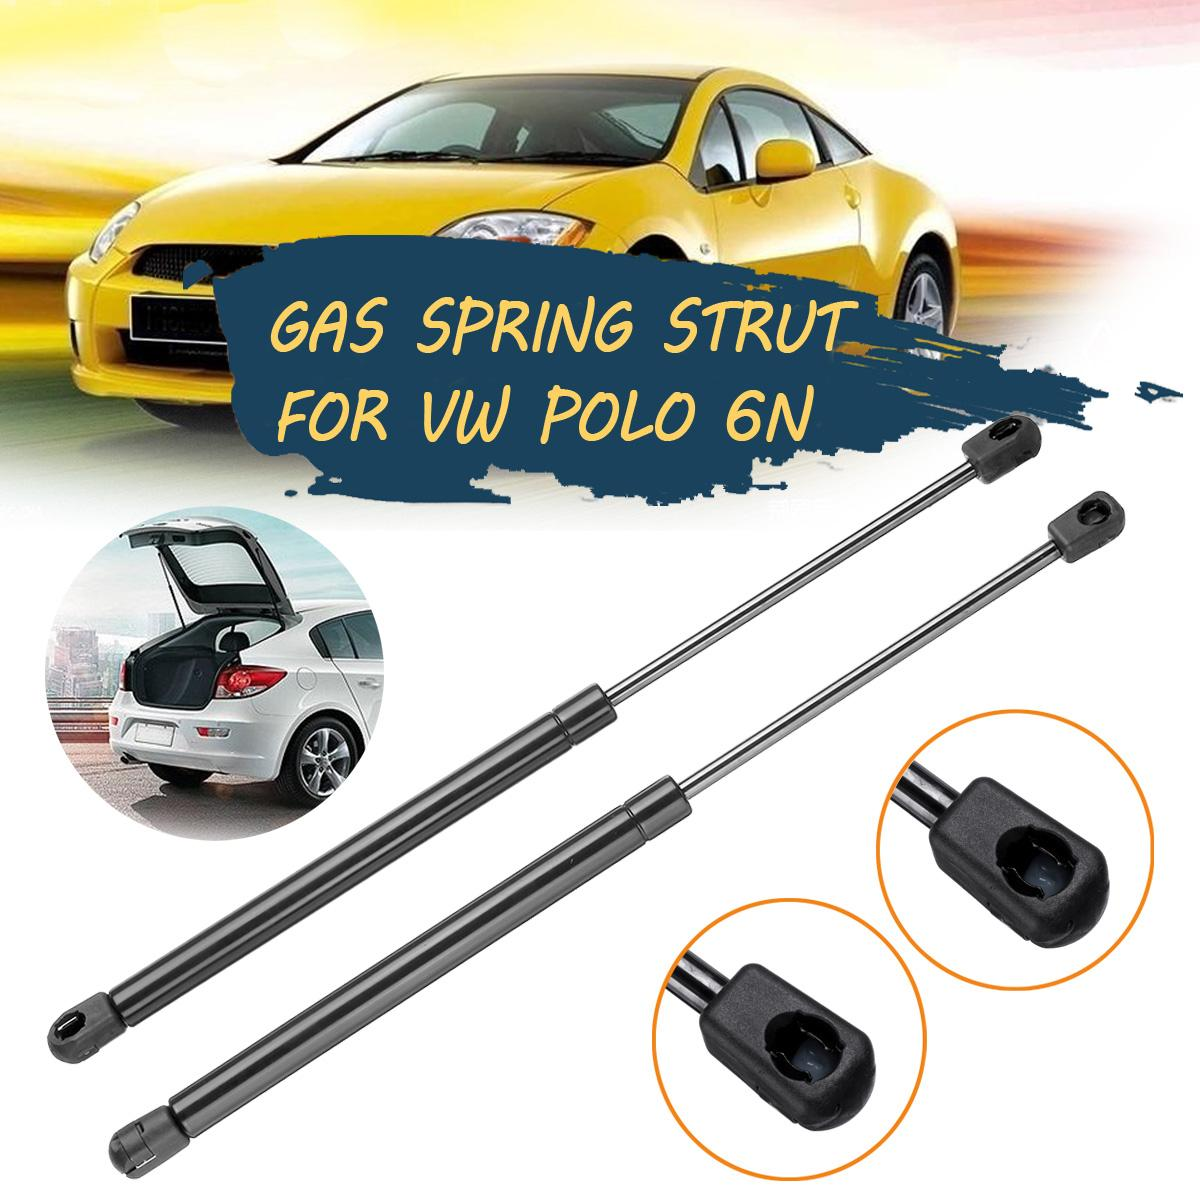 Pair Tailgate Boot Gas Springs Struts Support Lifter For VW Polo 6N 1996 1997 1998 1999 2000 2001 6N0827550A/6N0827550 Auto Part